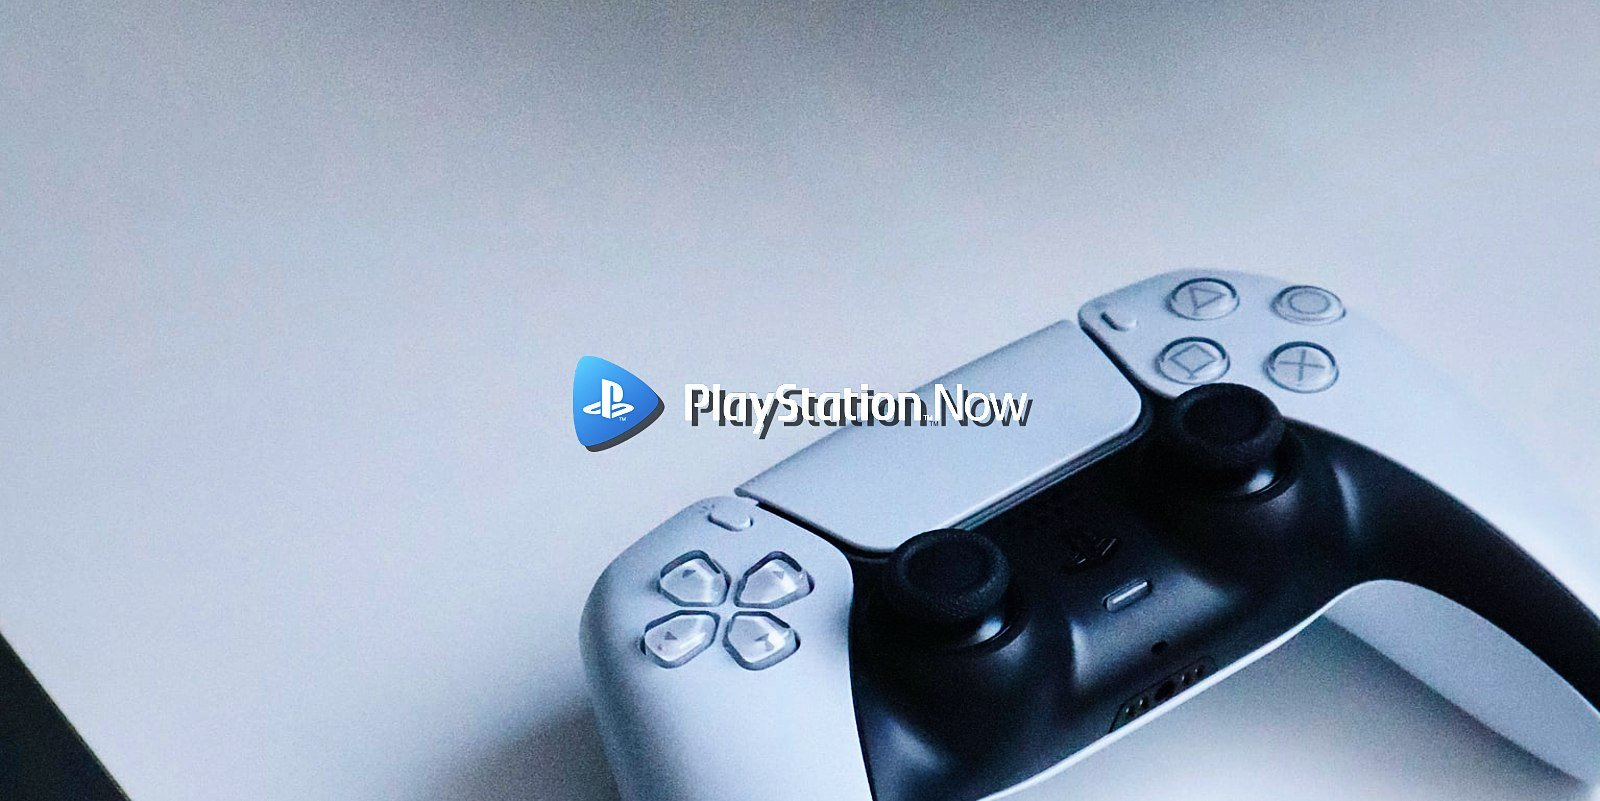 PlayStation Now bugs let sites run malicious code on Windows PCs